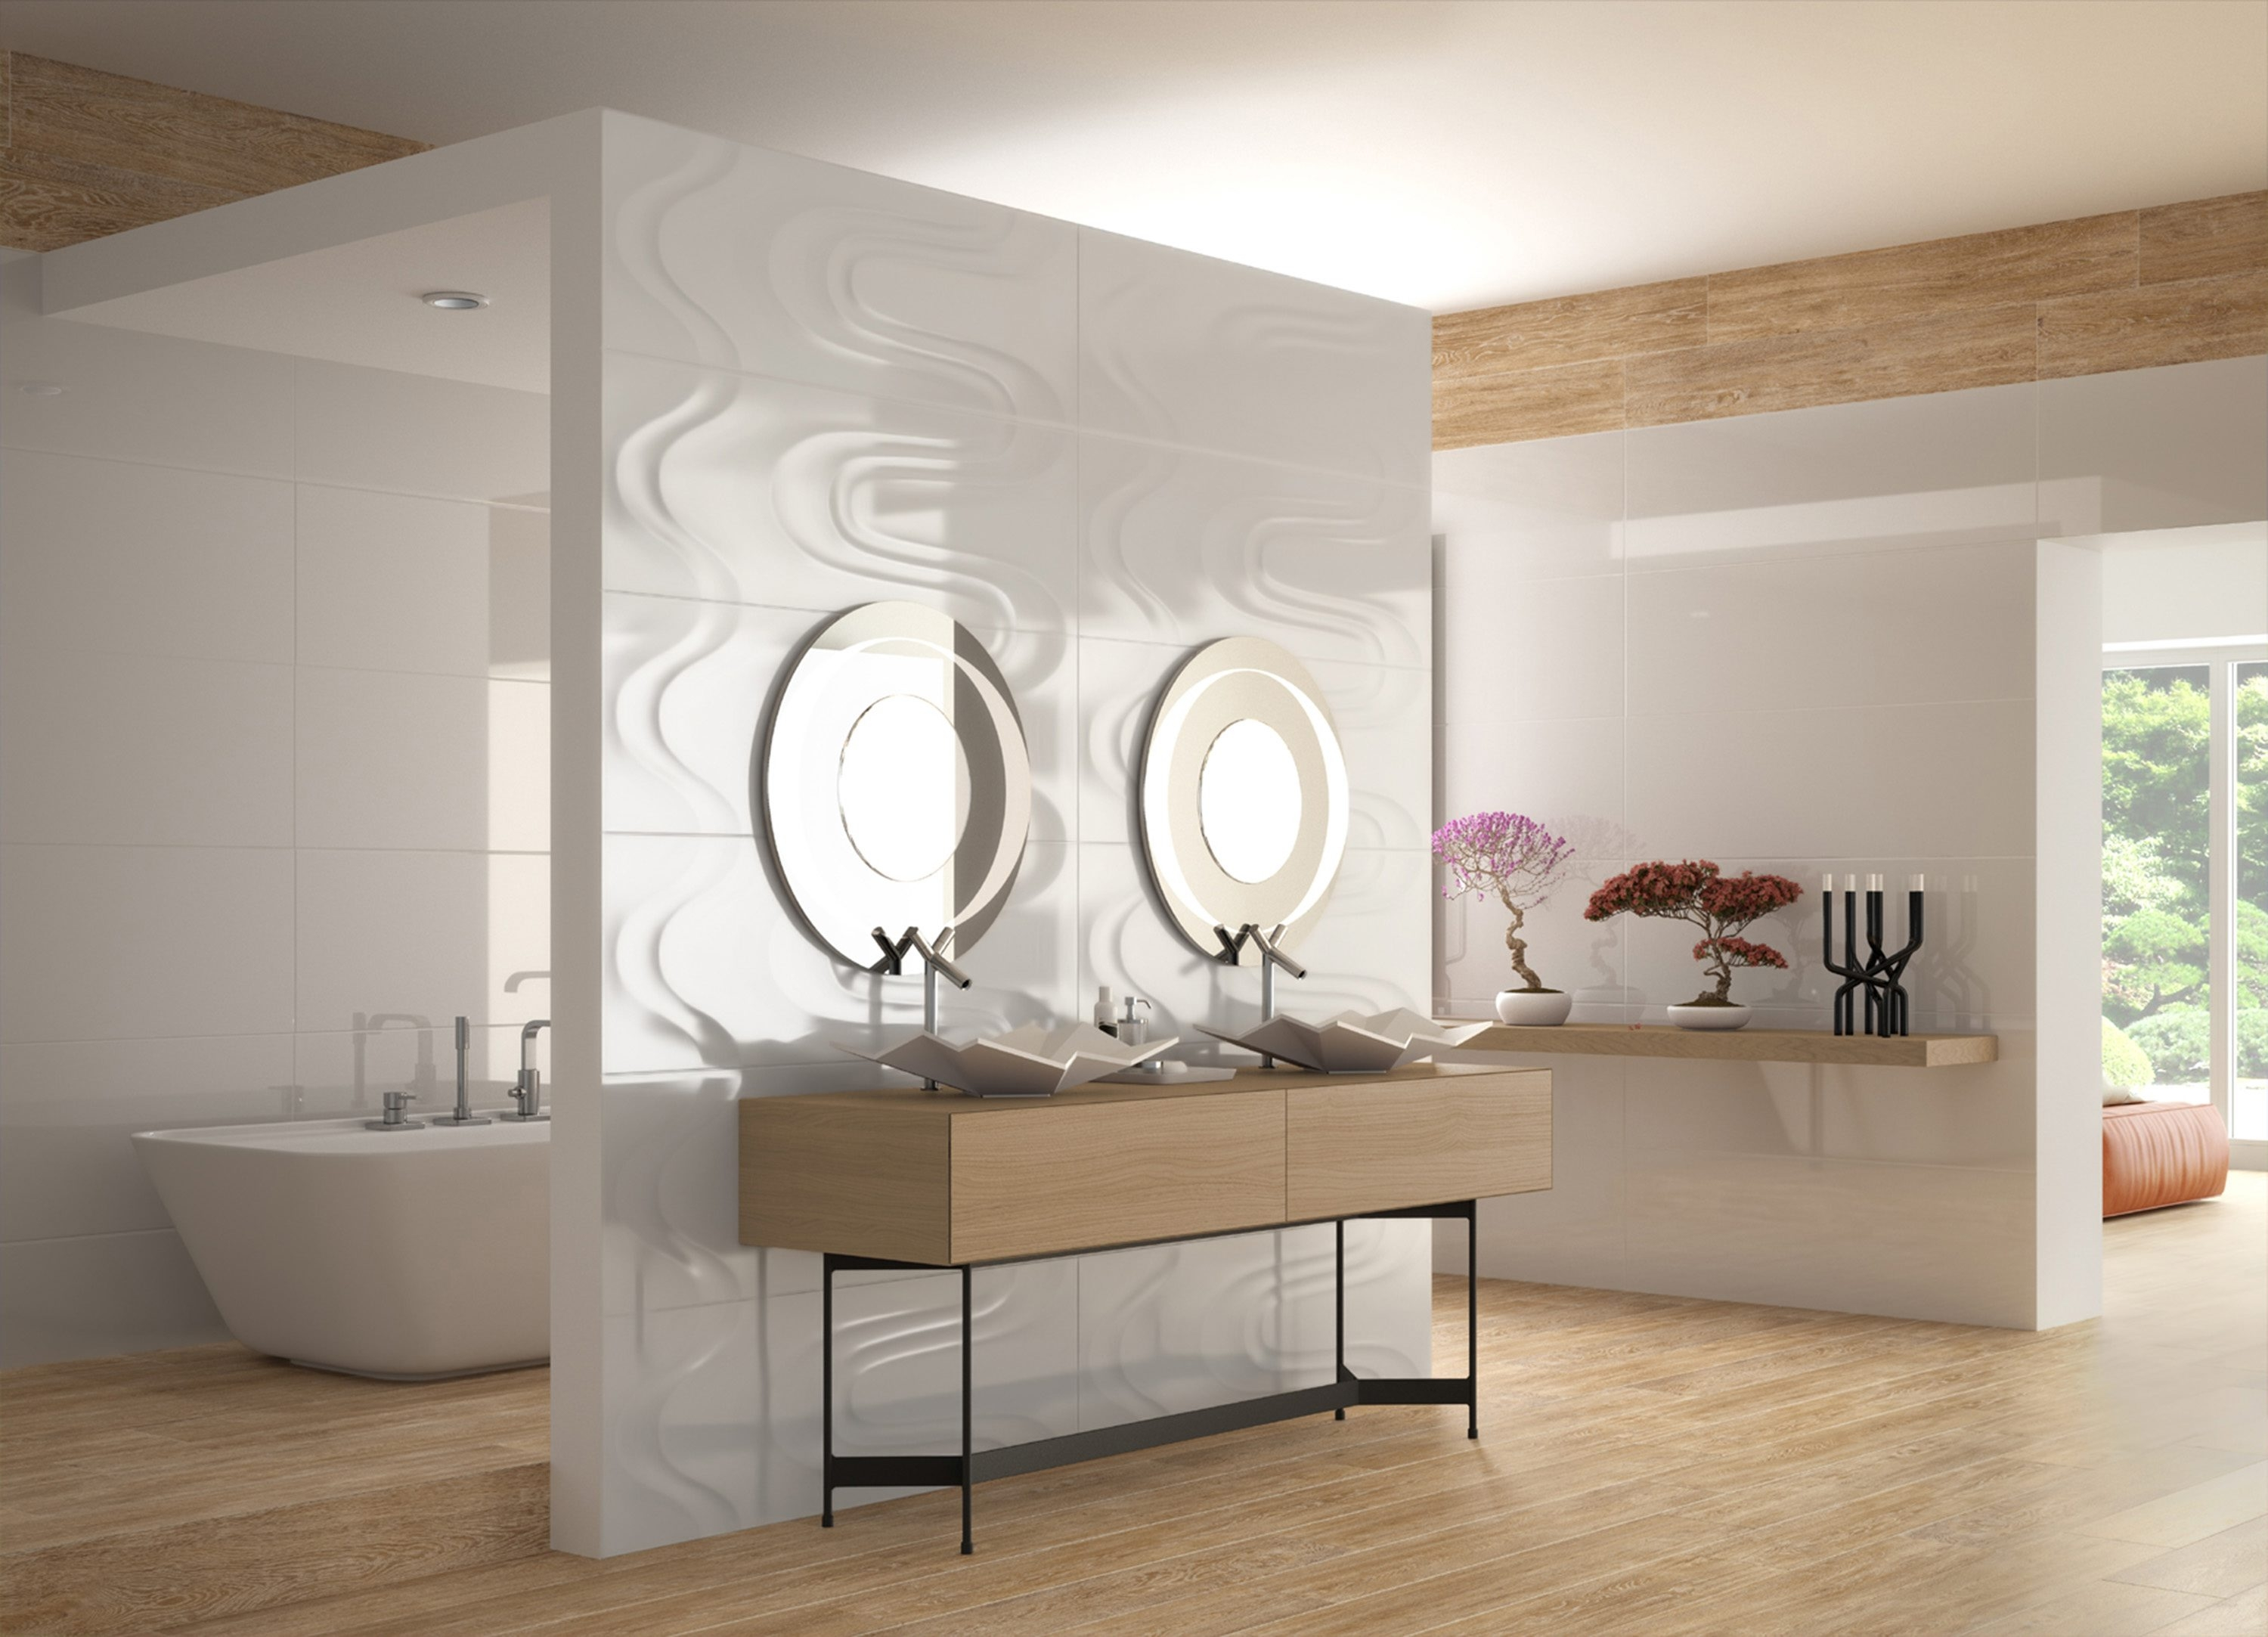 Saloni's Vantage Drip white and black tiles beg for a full wall with which to exercise their design potential.